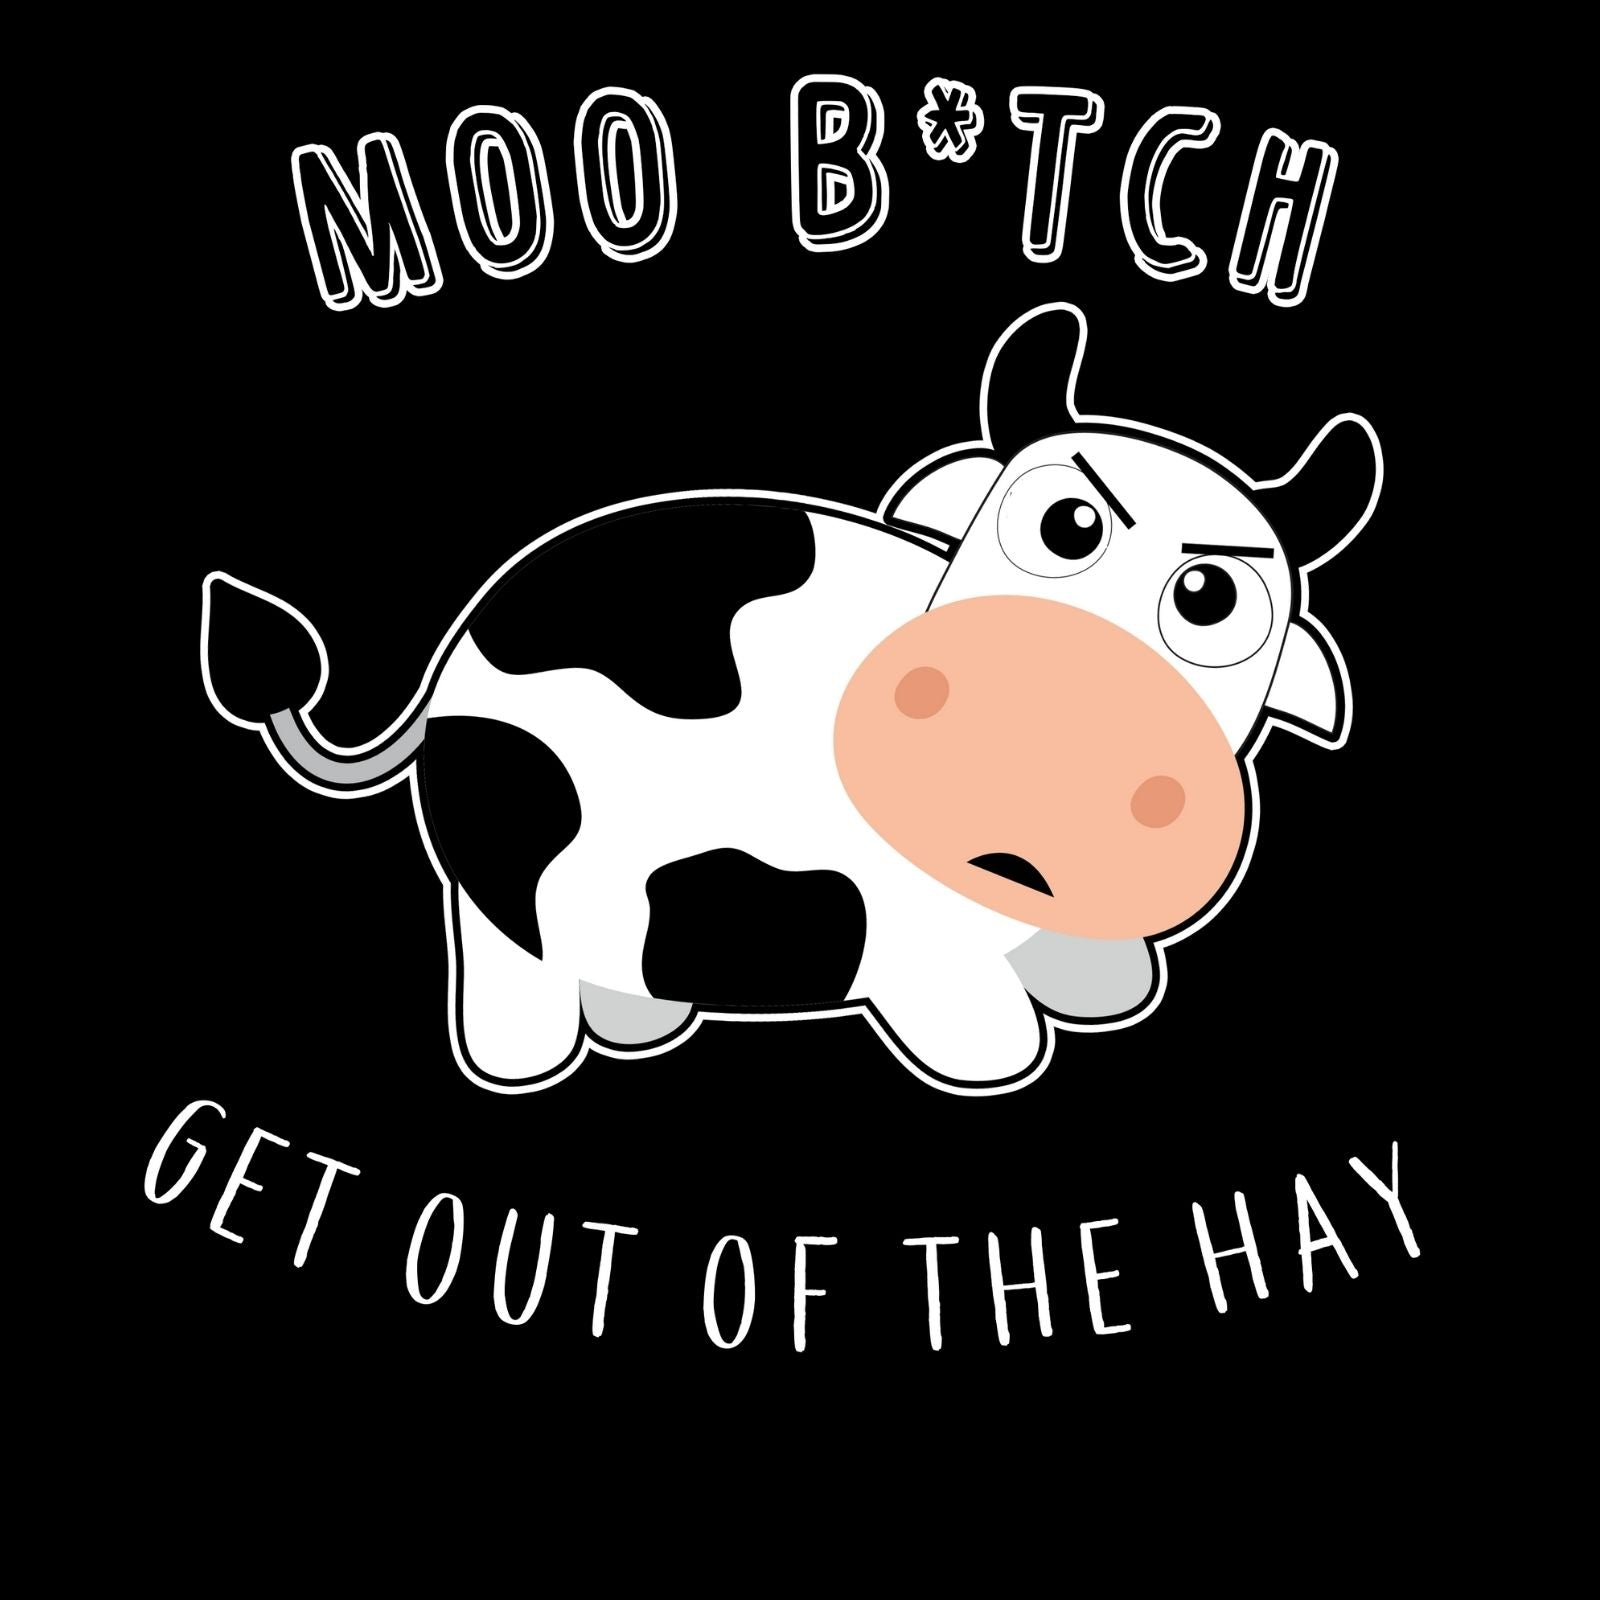 Moo B*tch Get Out Of The Hay - Bastard Graphics